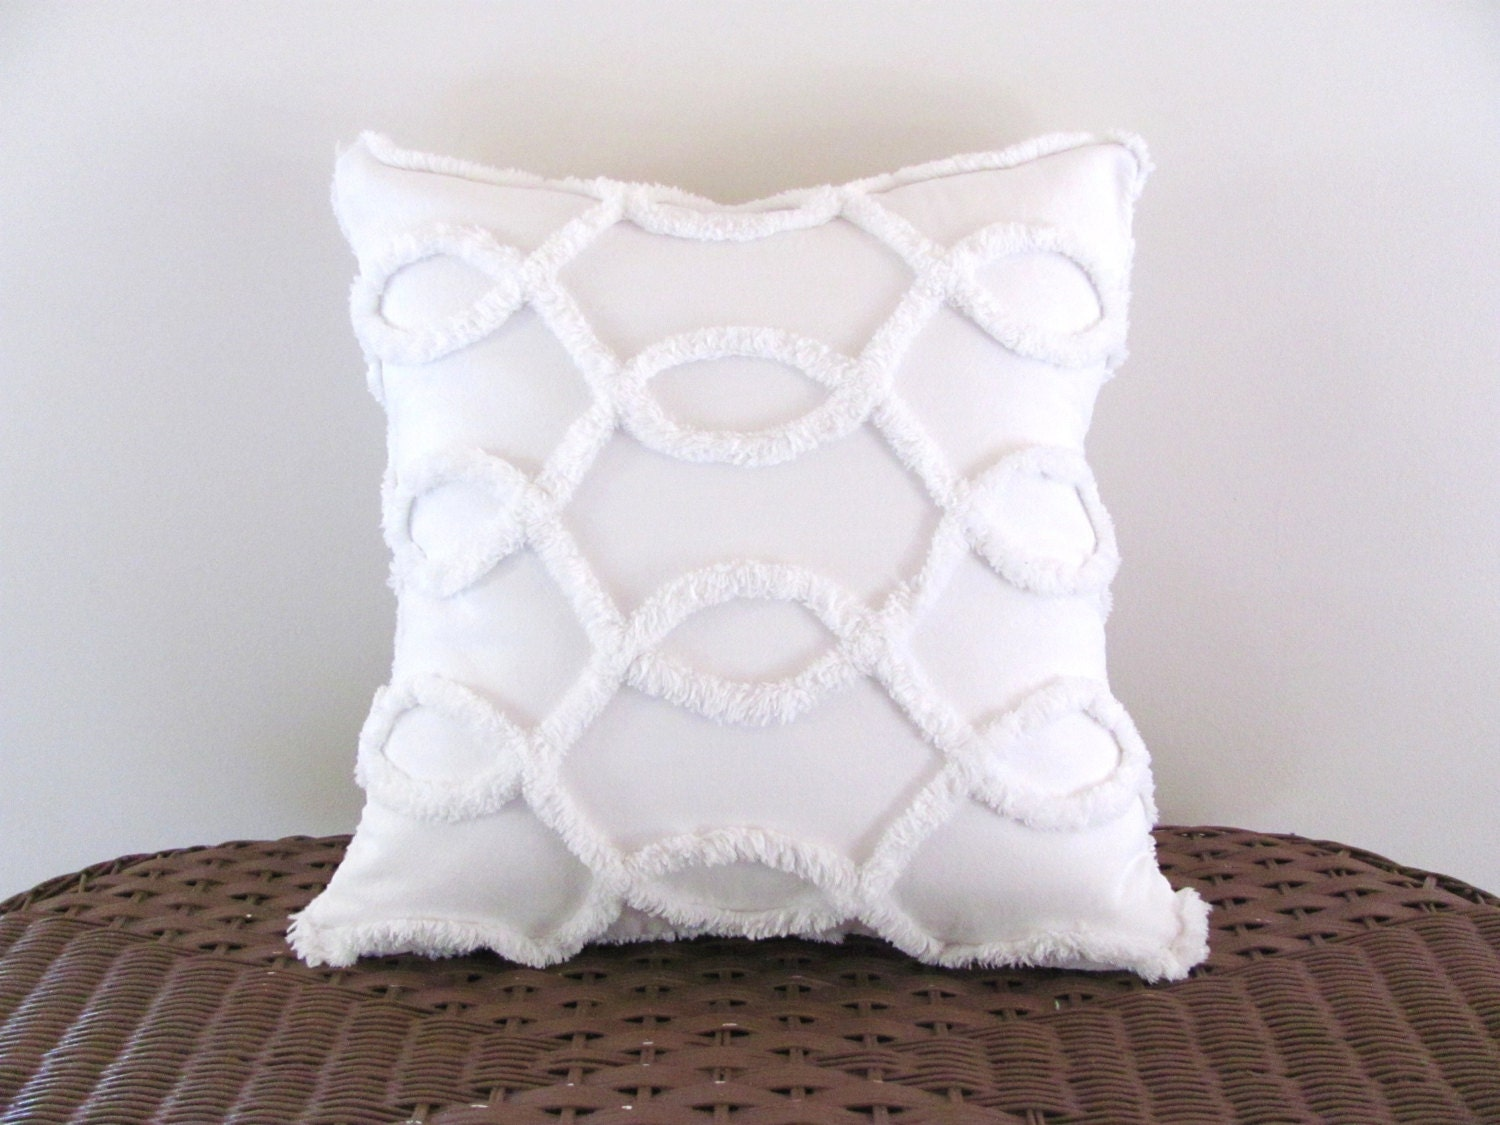 Decorative Pillows White : Decorative pillow cover WHITE CURVES white chenille cushion